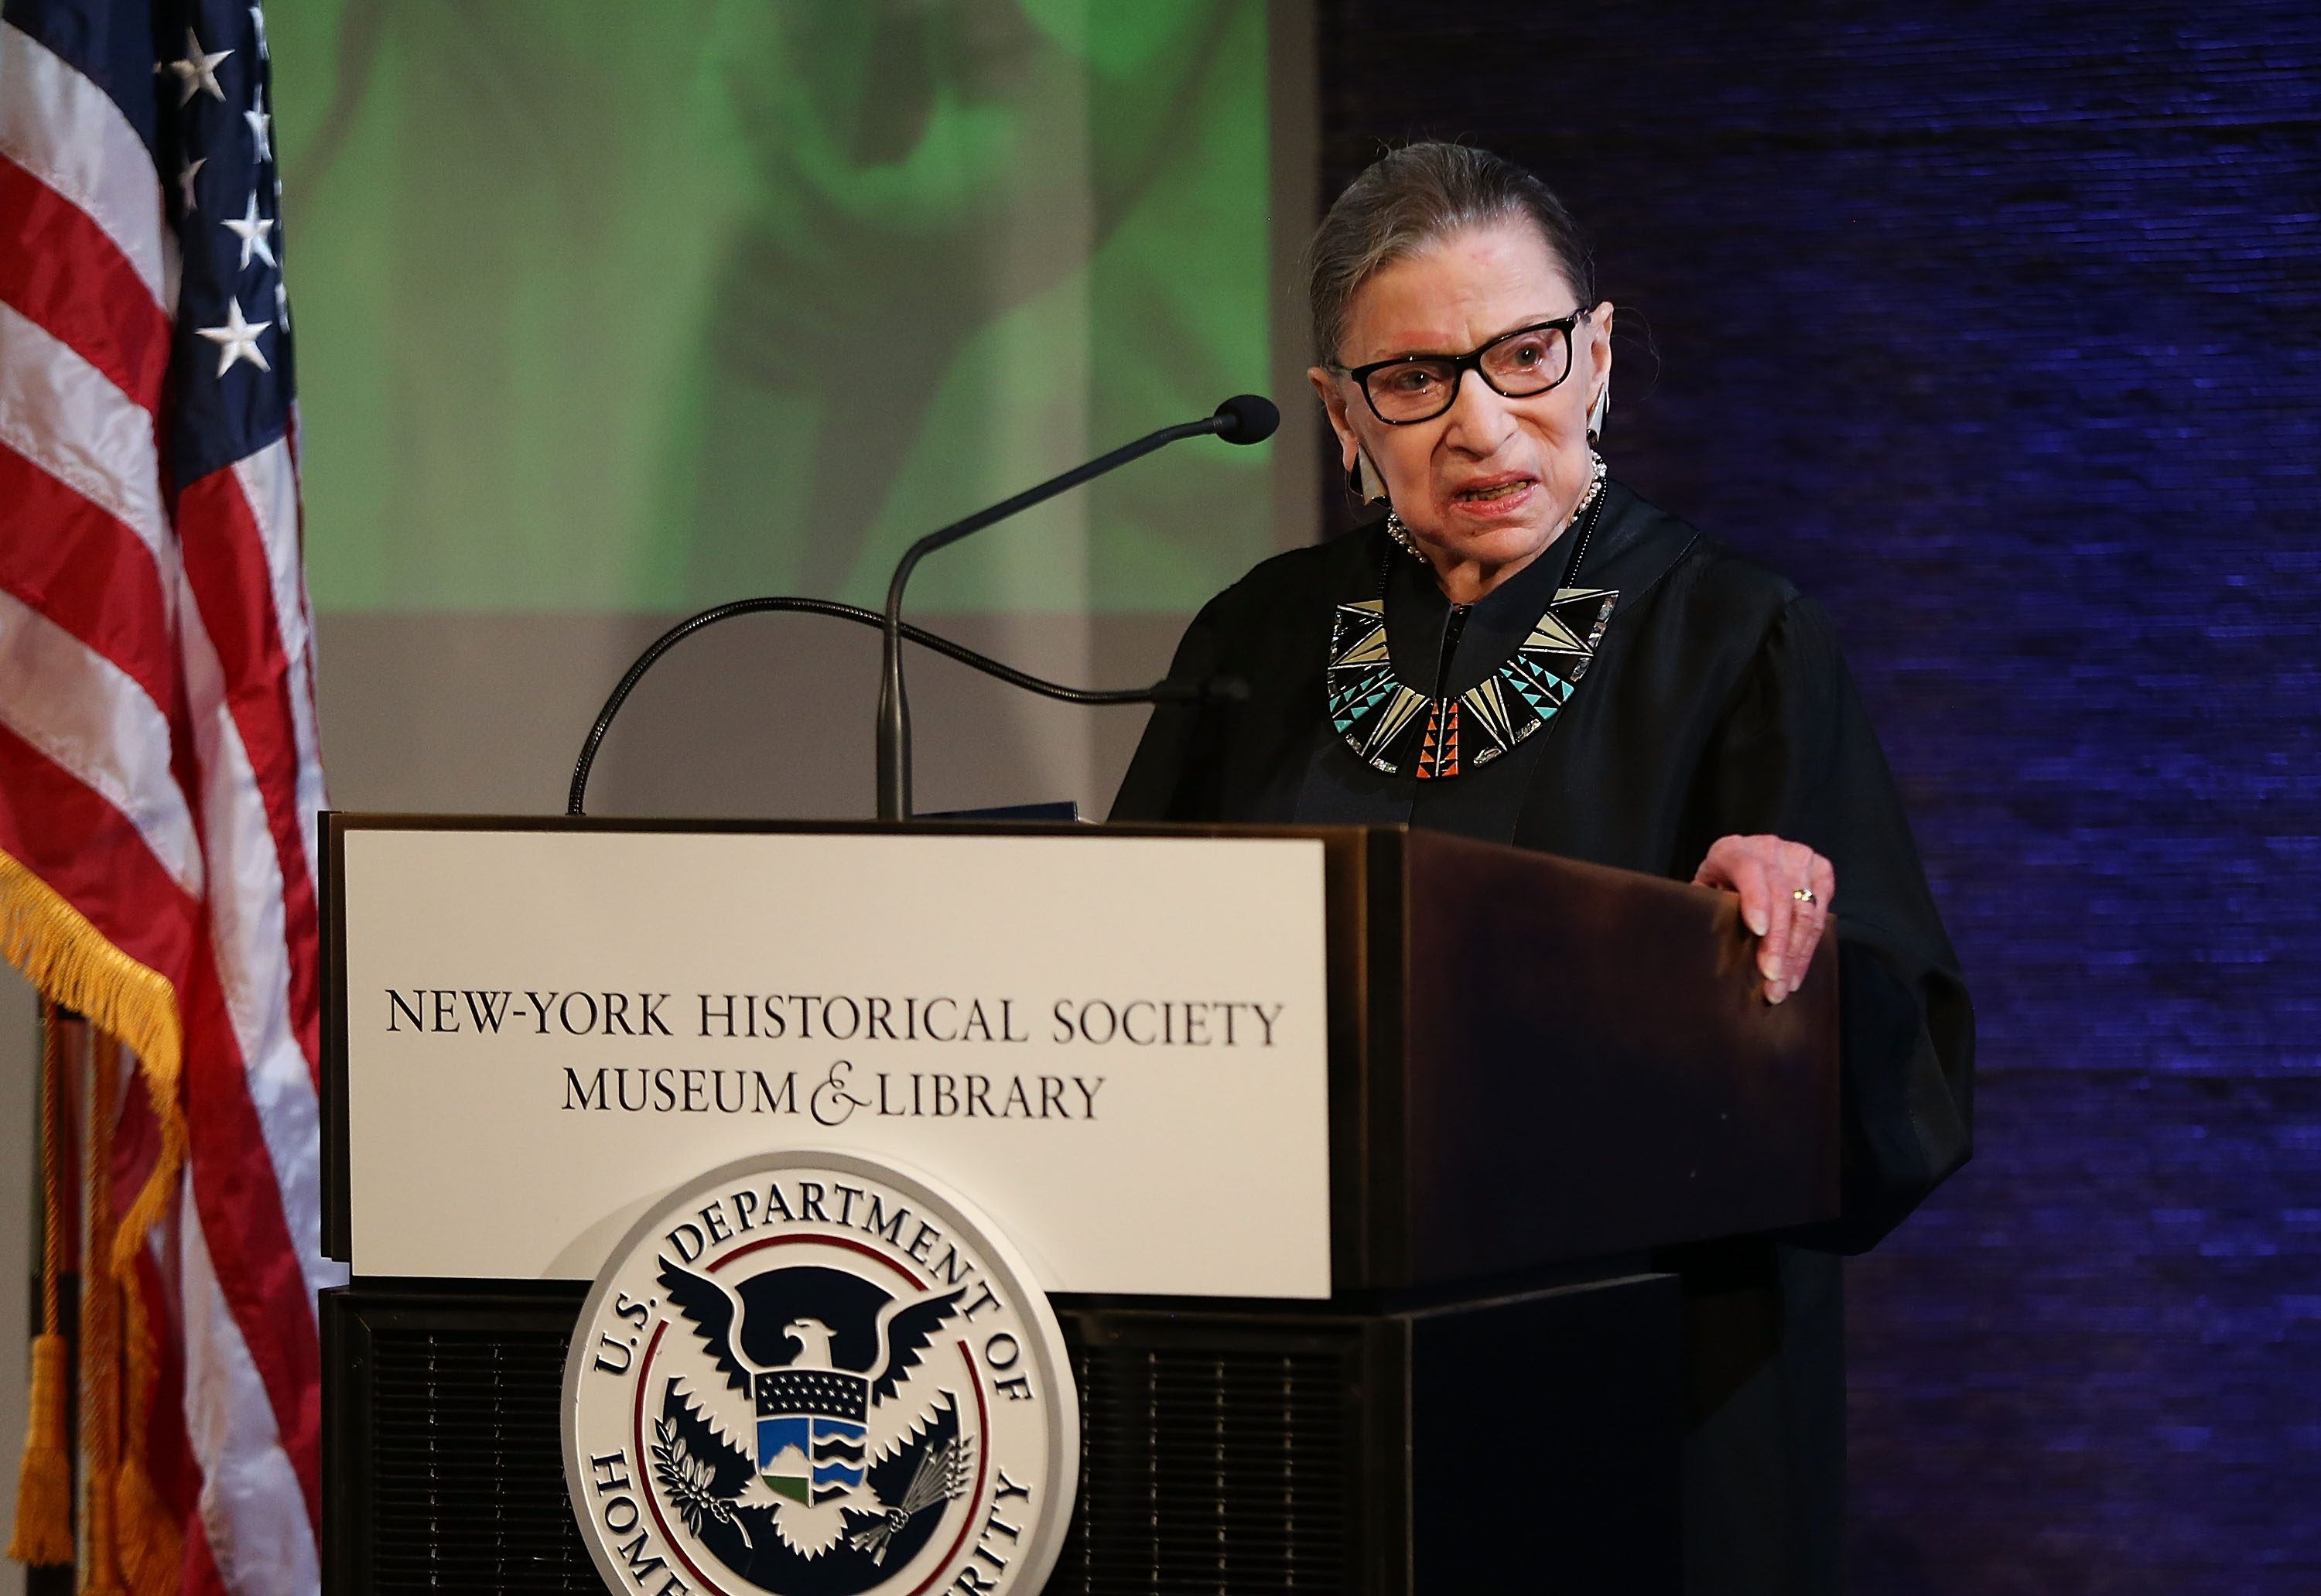 U.S. Supreme Court Justice Ruth Bader Ginsburg prepares to administer the Oath of Allegiance to candidates for U.S. citizenship at the New-York Historical Society on April 10, 2018 in New York City. Two hundred candidates from 59 countries participated in the morning ceremony becoming American citizens. (Getty Images)